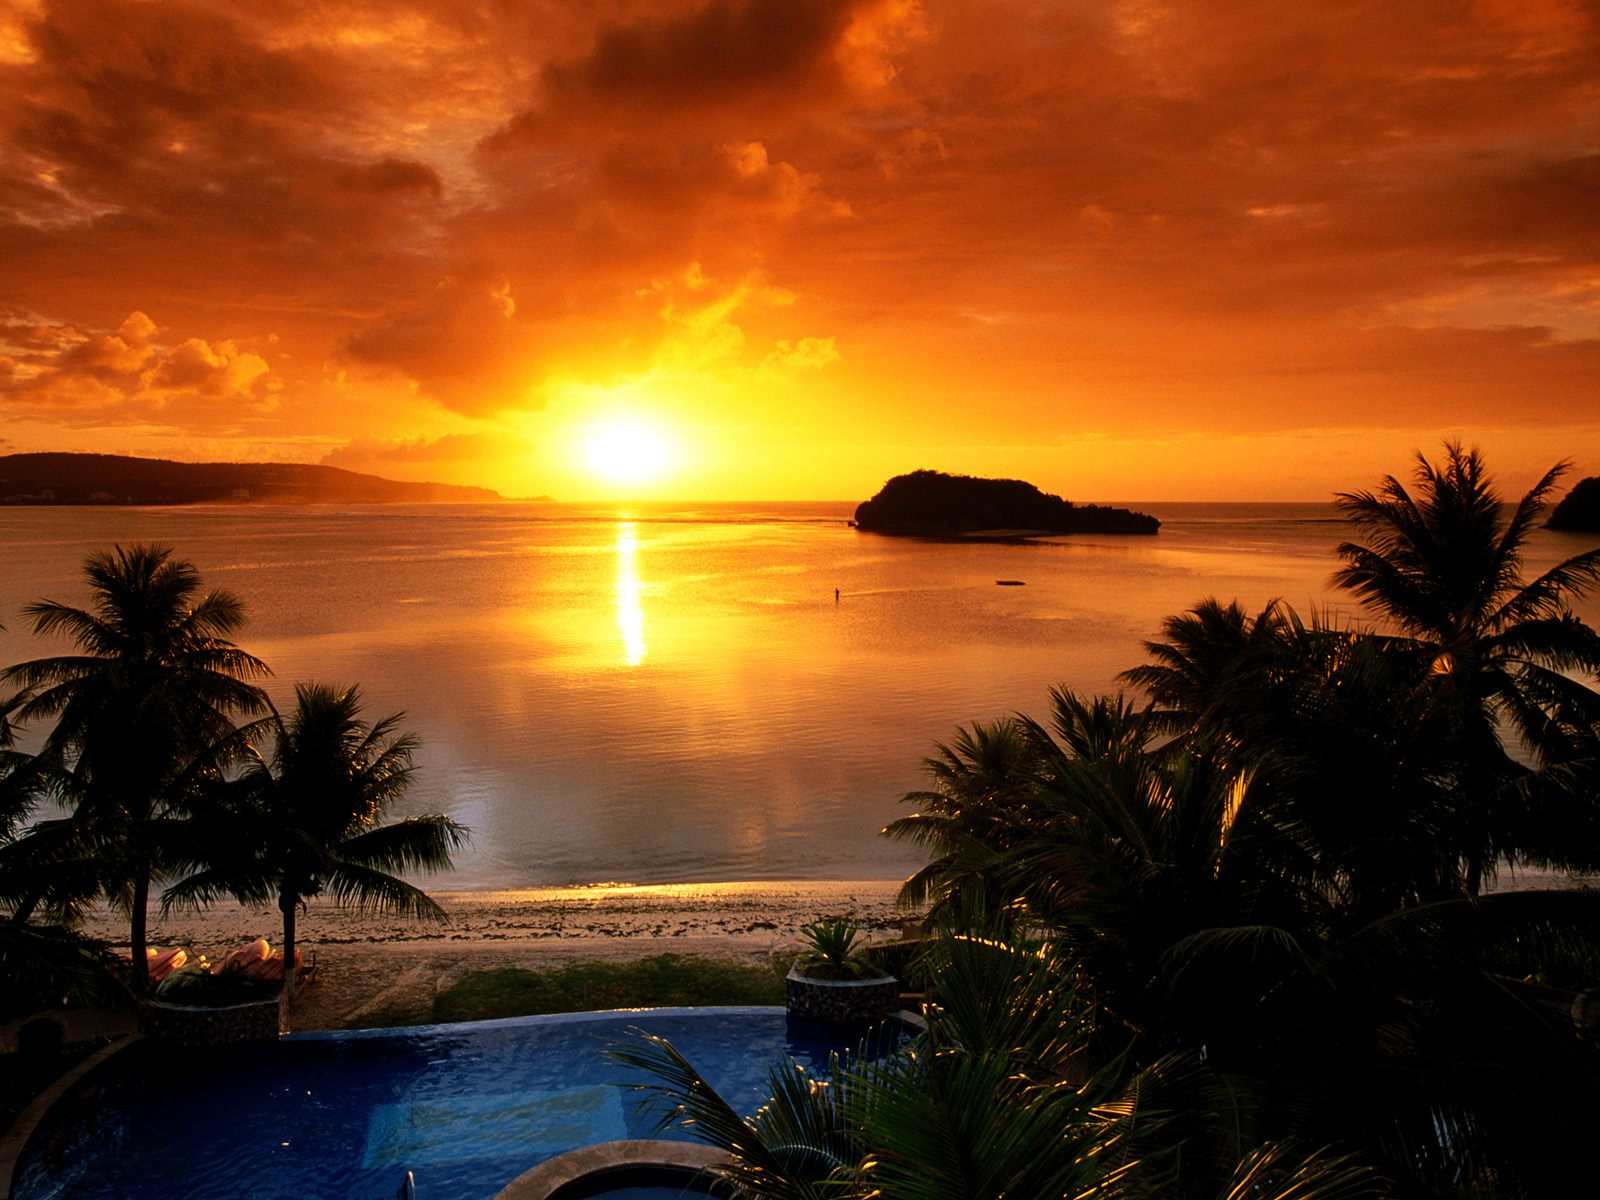 http://4.bp.blogspot.com/-T0vqaHyc6Ec/TkAiP88PVKI/AAAAAAAAAG8/8dGGX_5Rrd8/s1600/Beautiful-Sunrise-Wallpaper.jpg